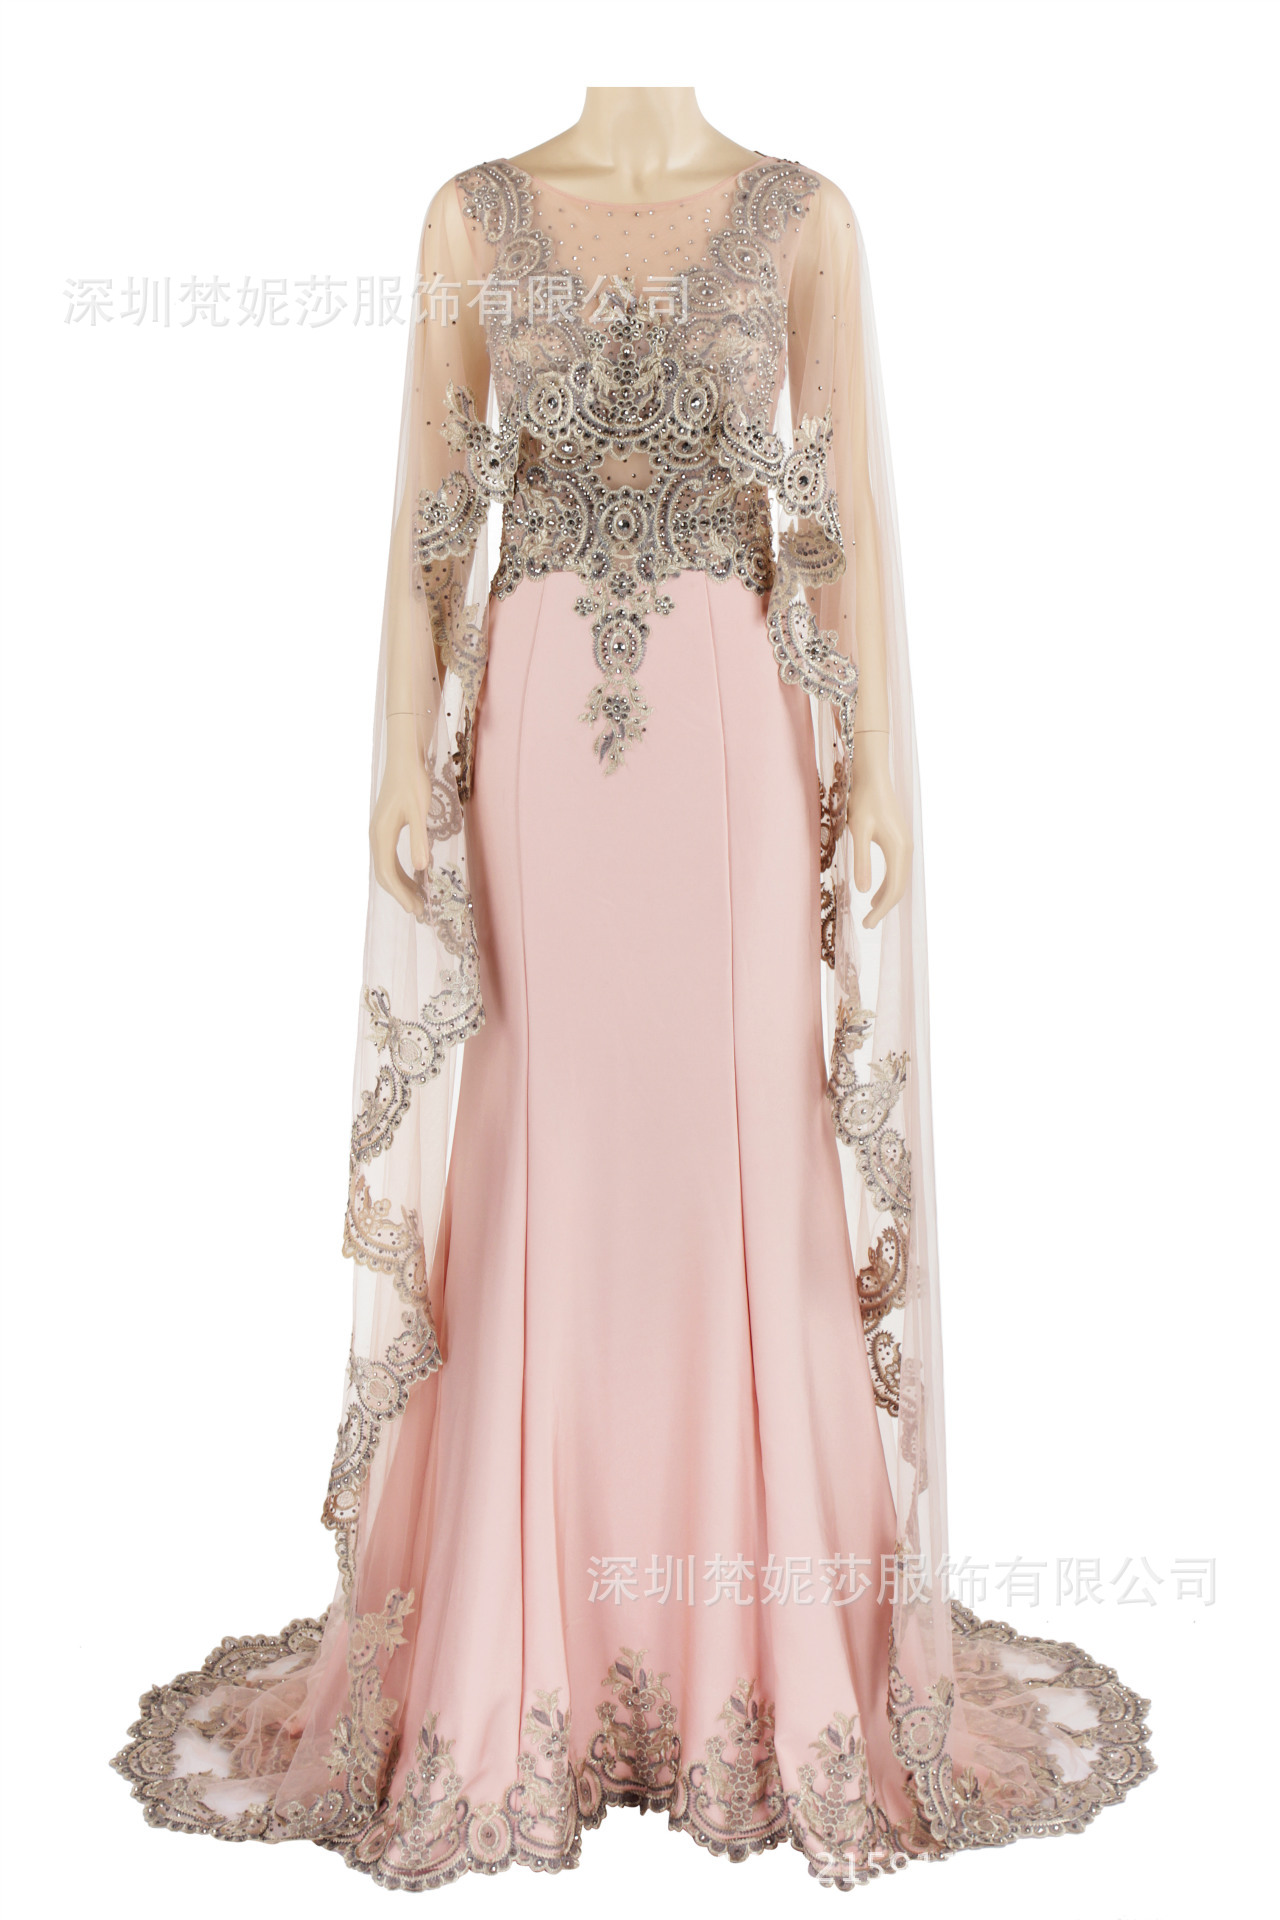 Muslim   Evening     Dresses   Long Sleeves 2019 Lace Appliques Beaded Saudi Arabic Formal Party Gowns abiye gece elbisesi